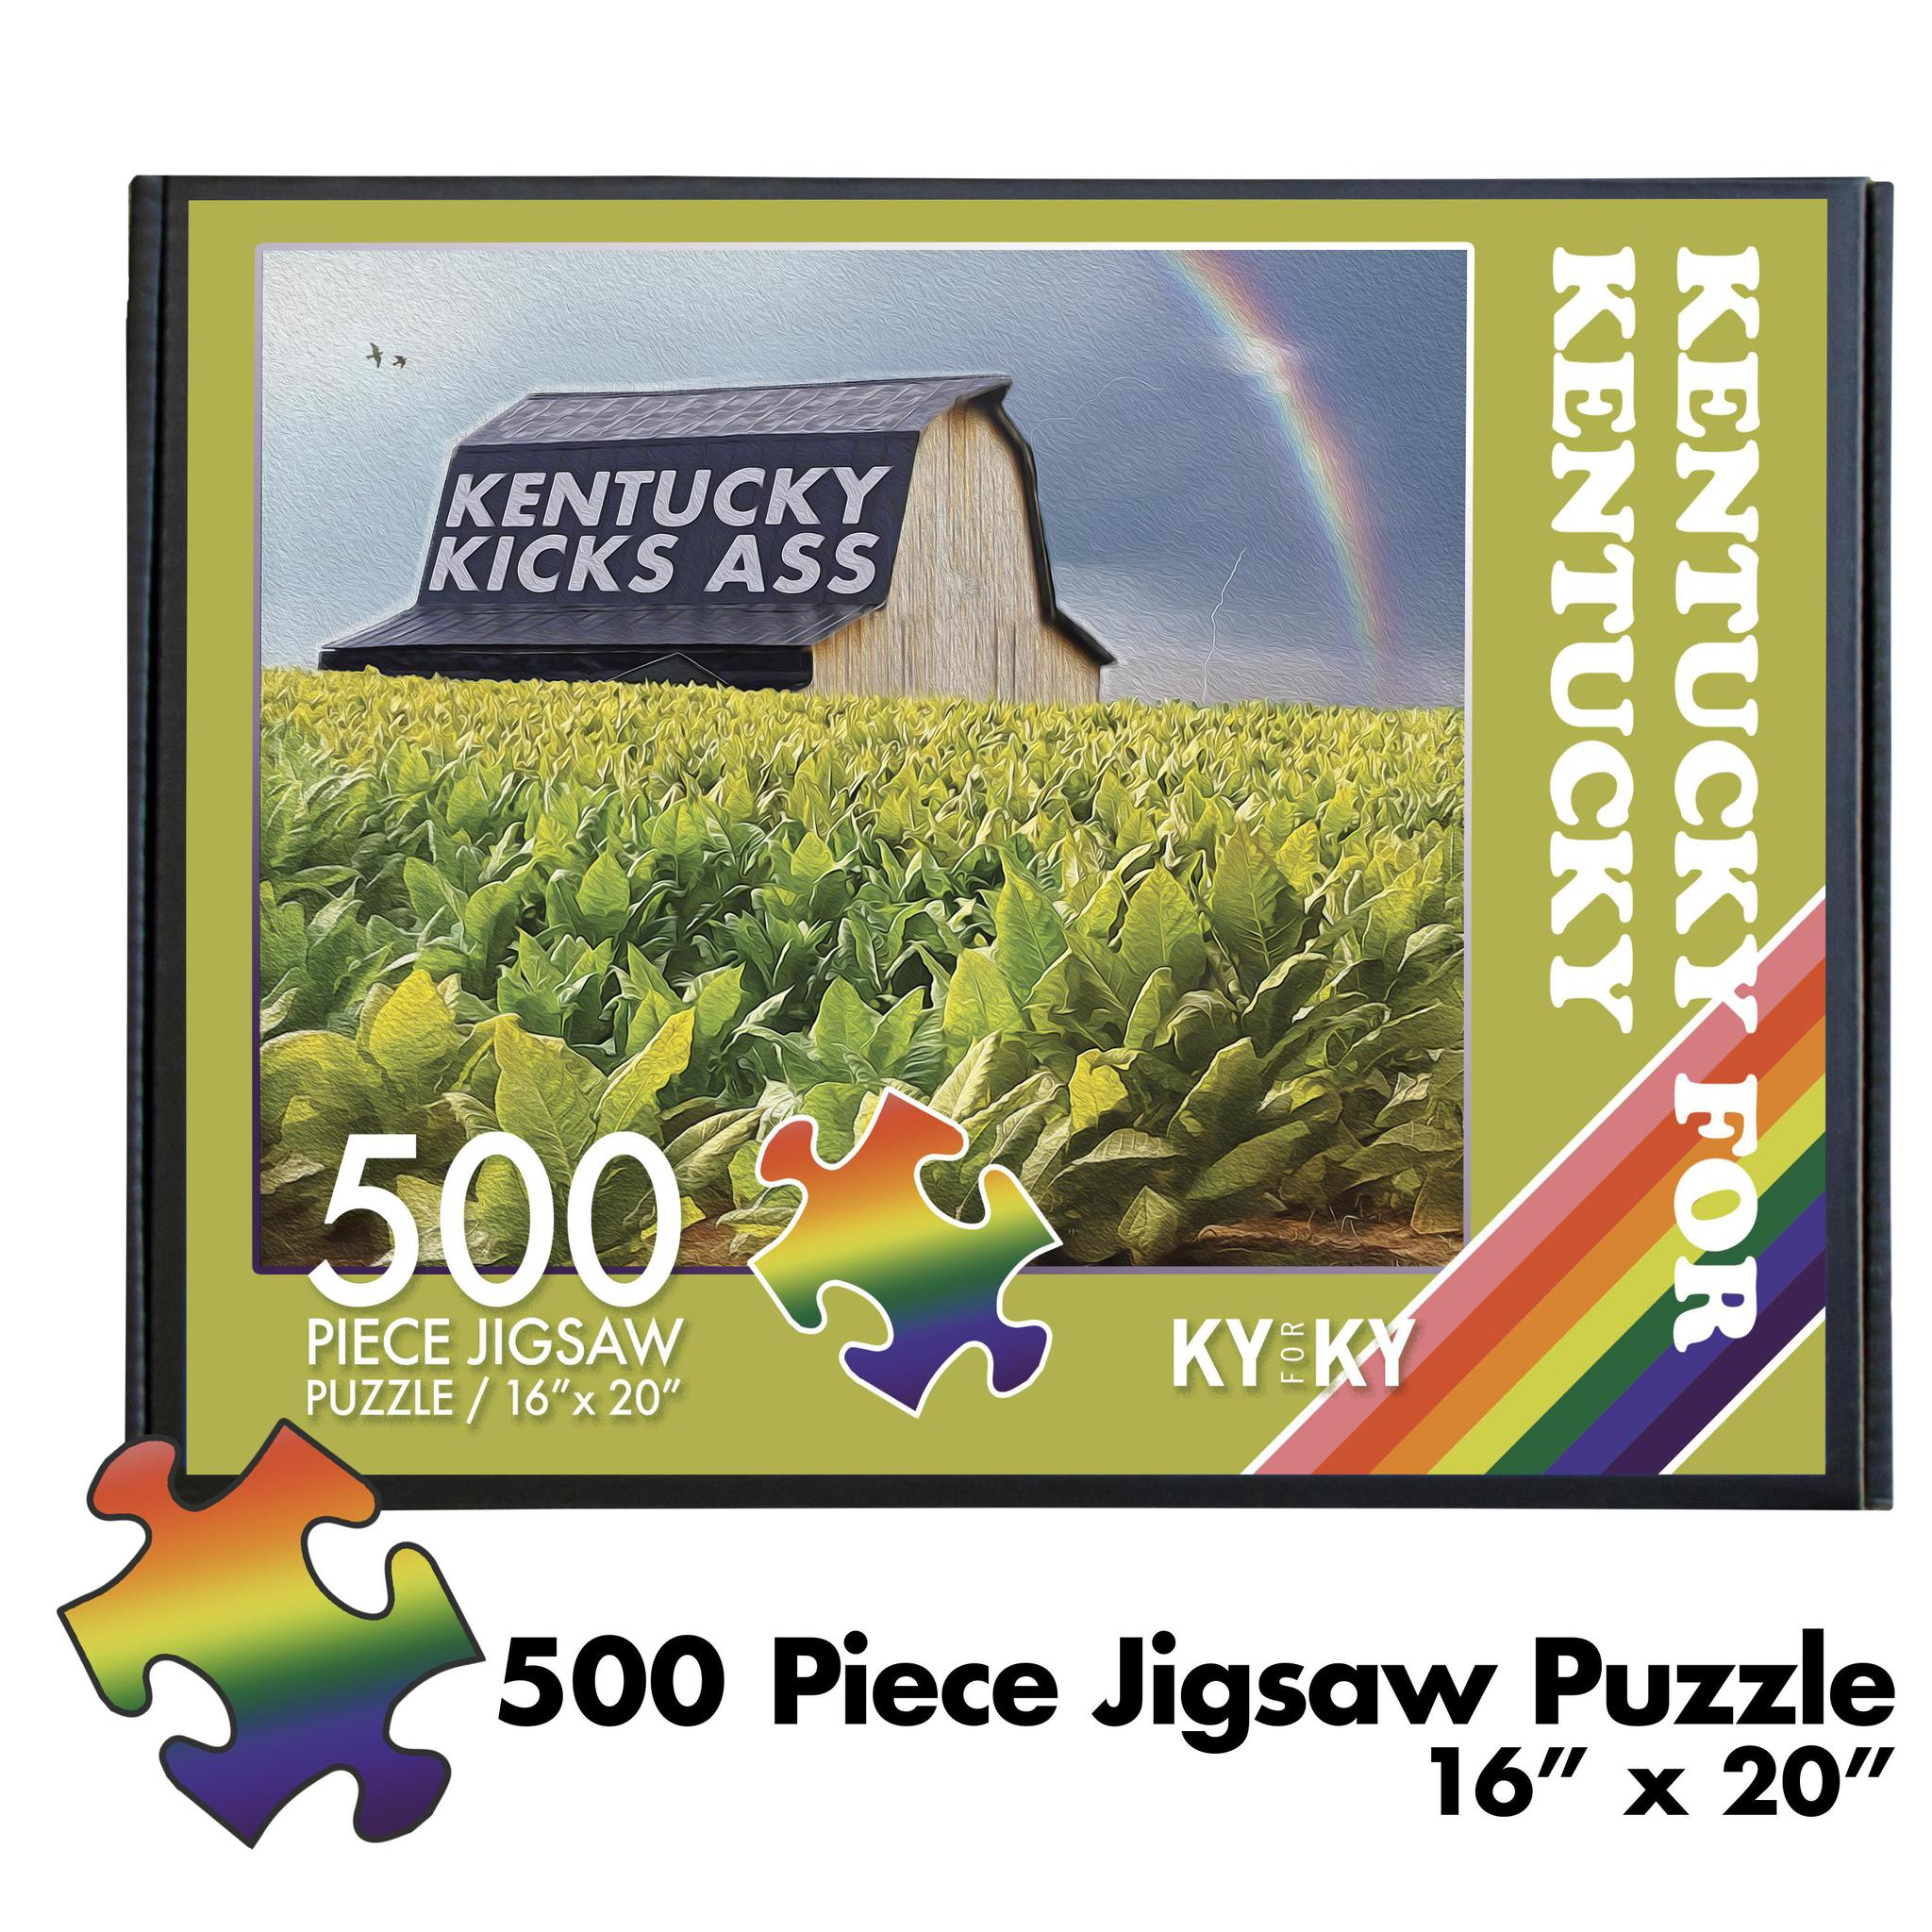 KY Kicks Ass Tobacco Barn Puzzle